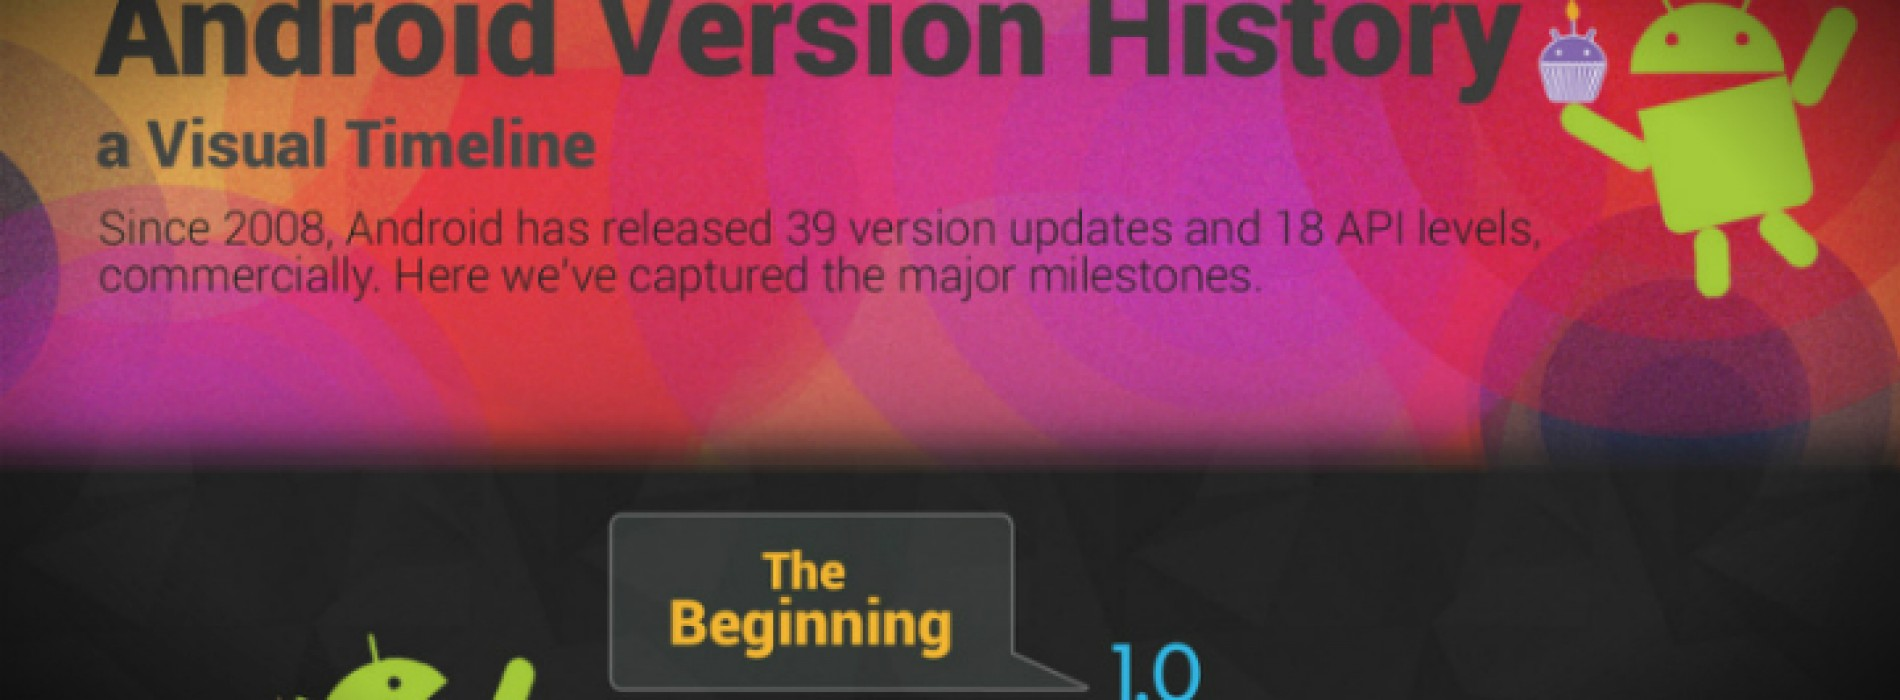 Android Version History: A Visual Timeline (Infographic)